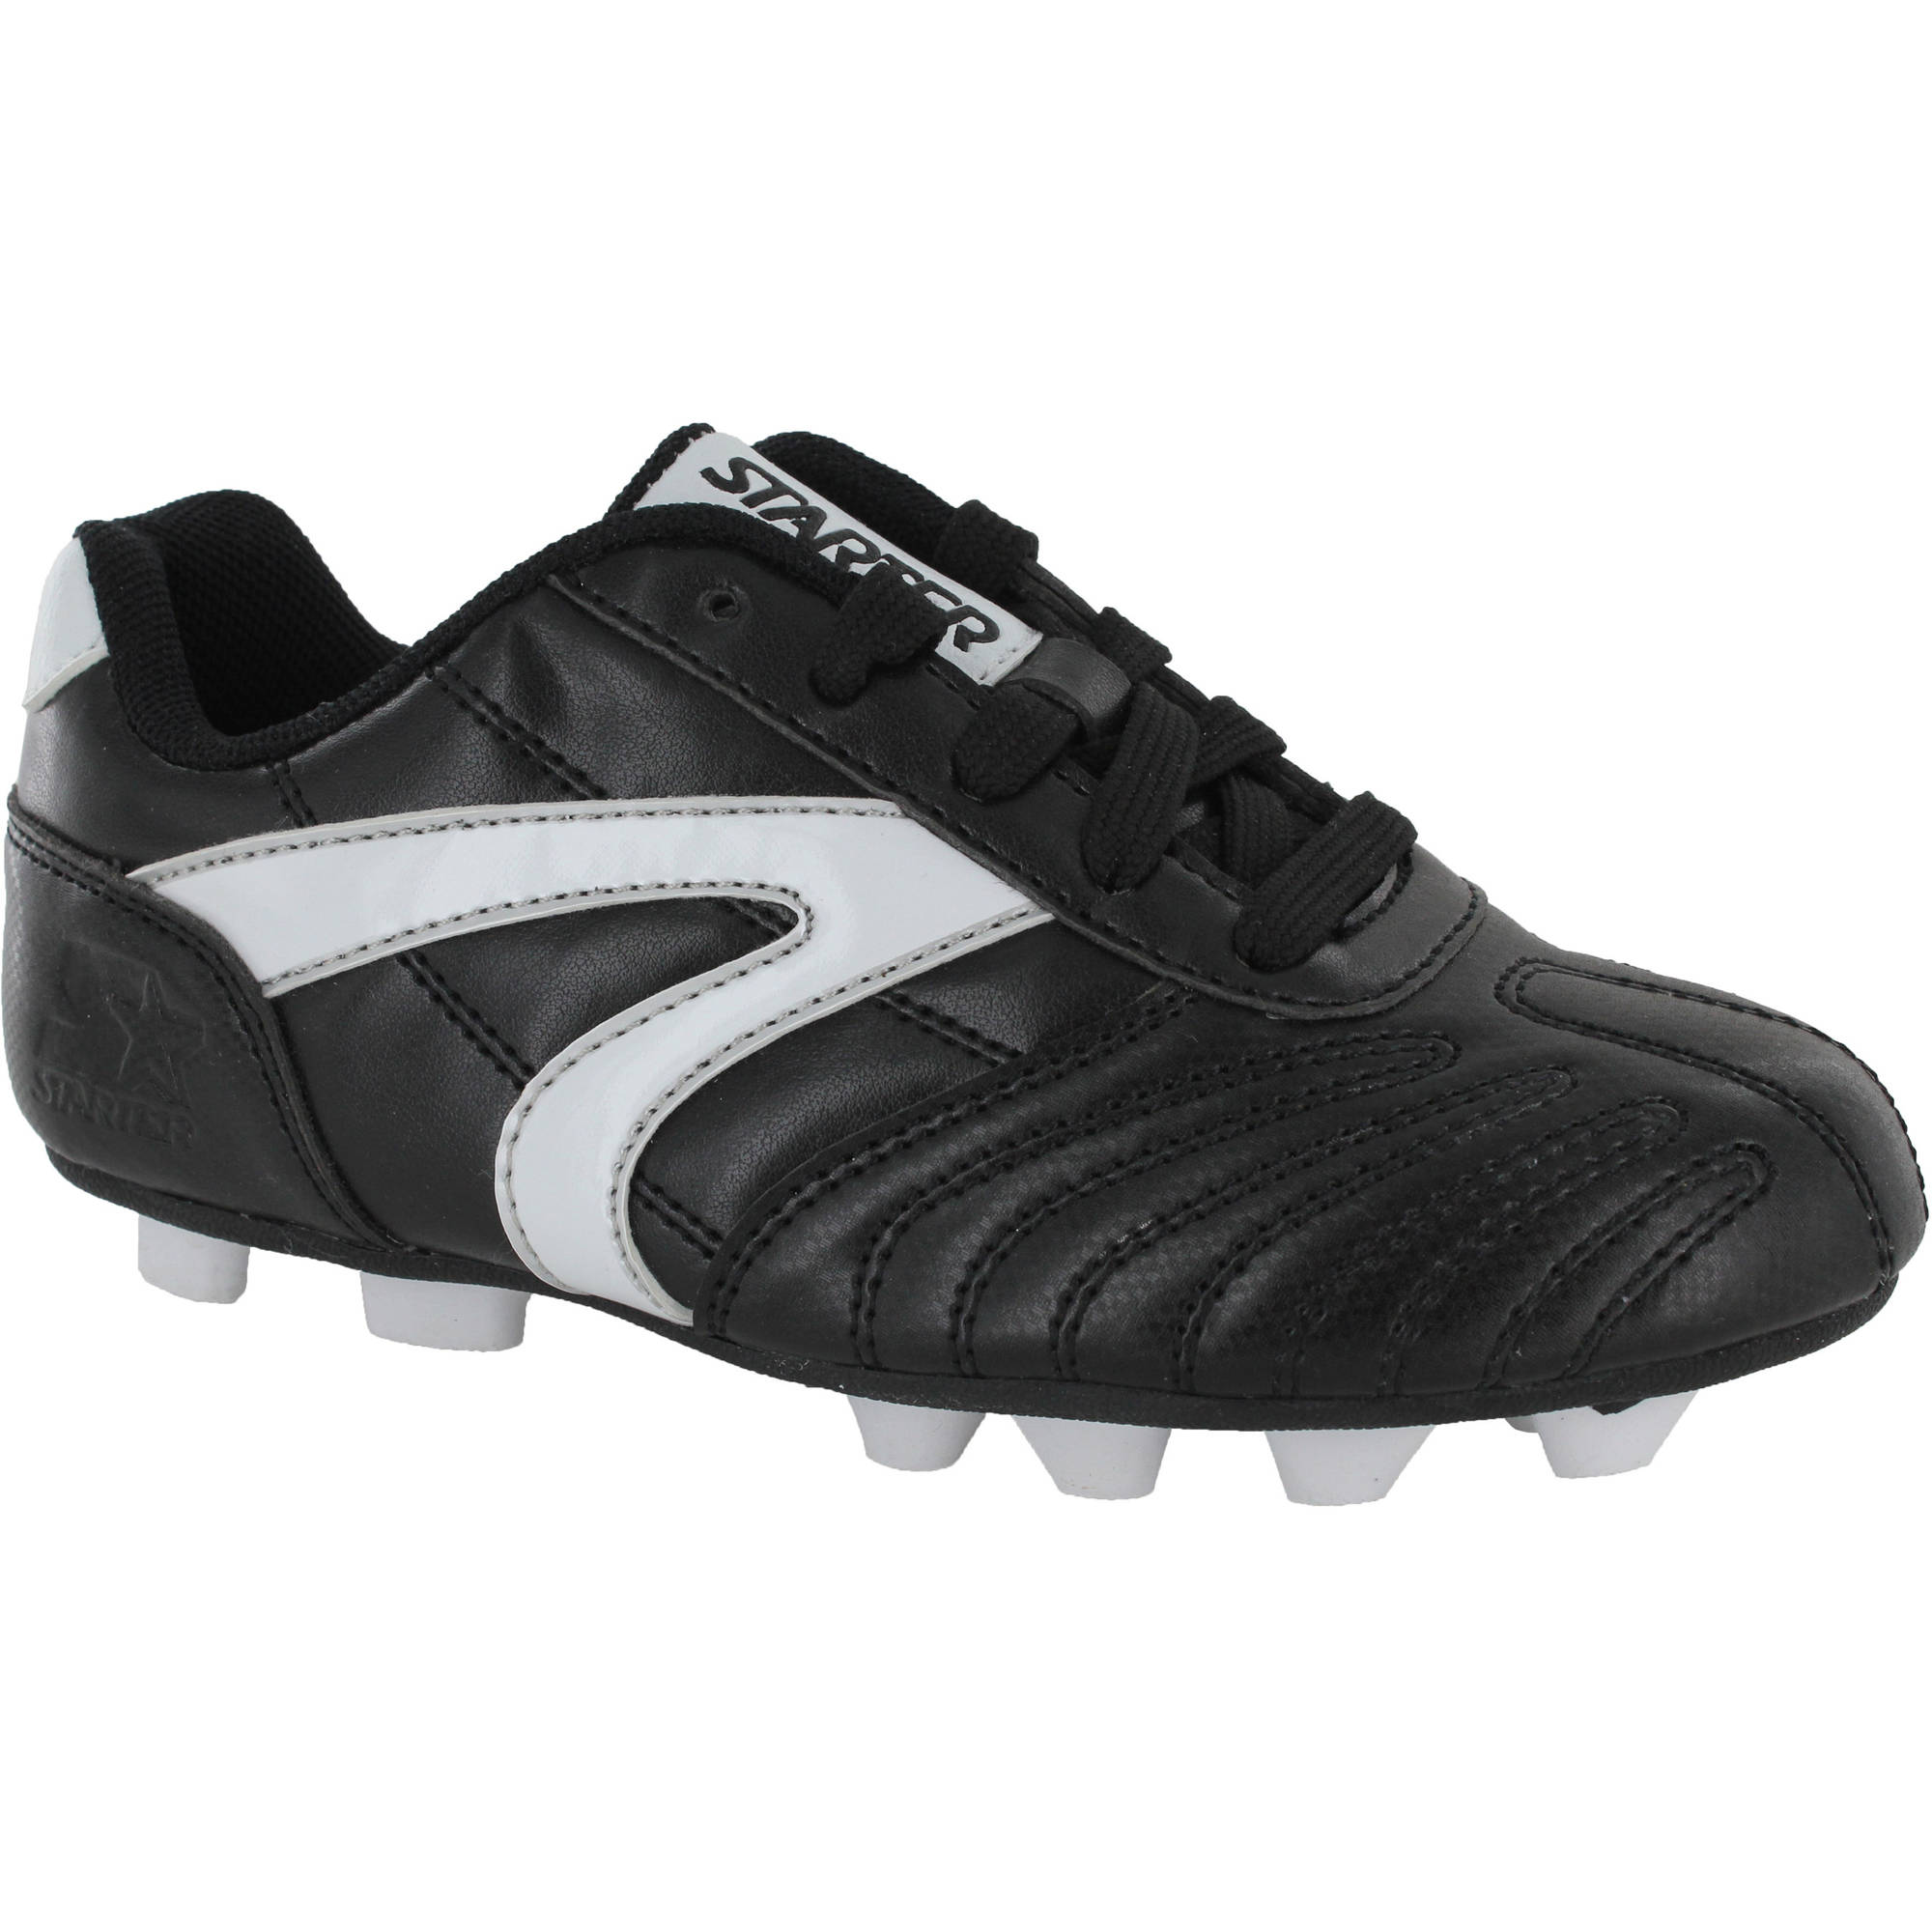 starter boys athletic sidewinder soccer cleat walmart com